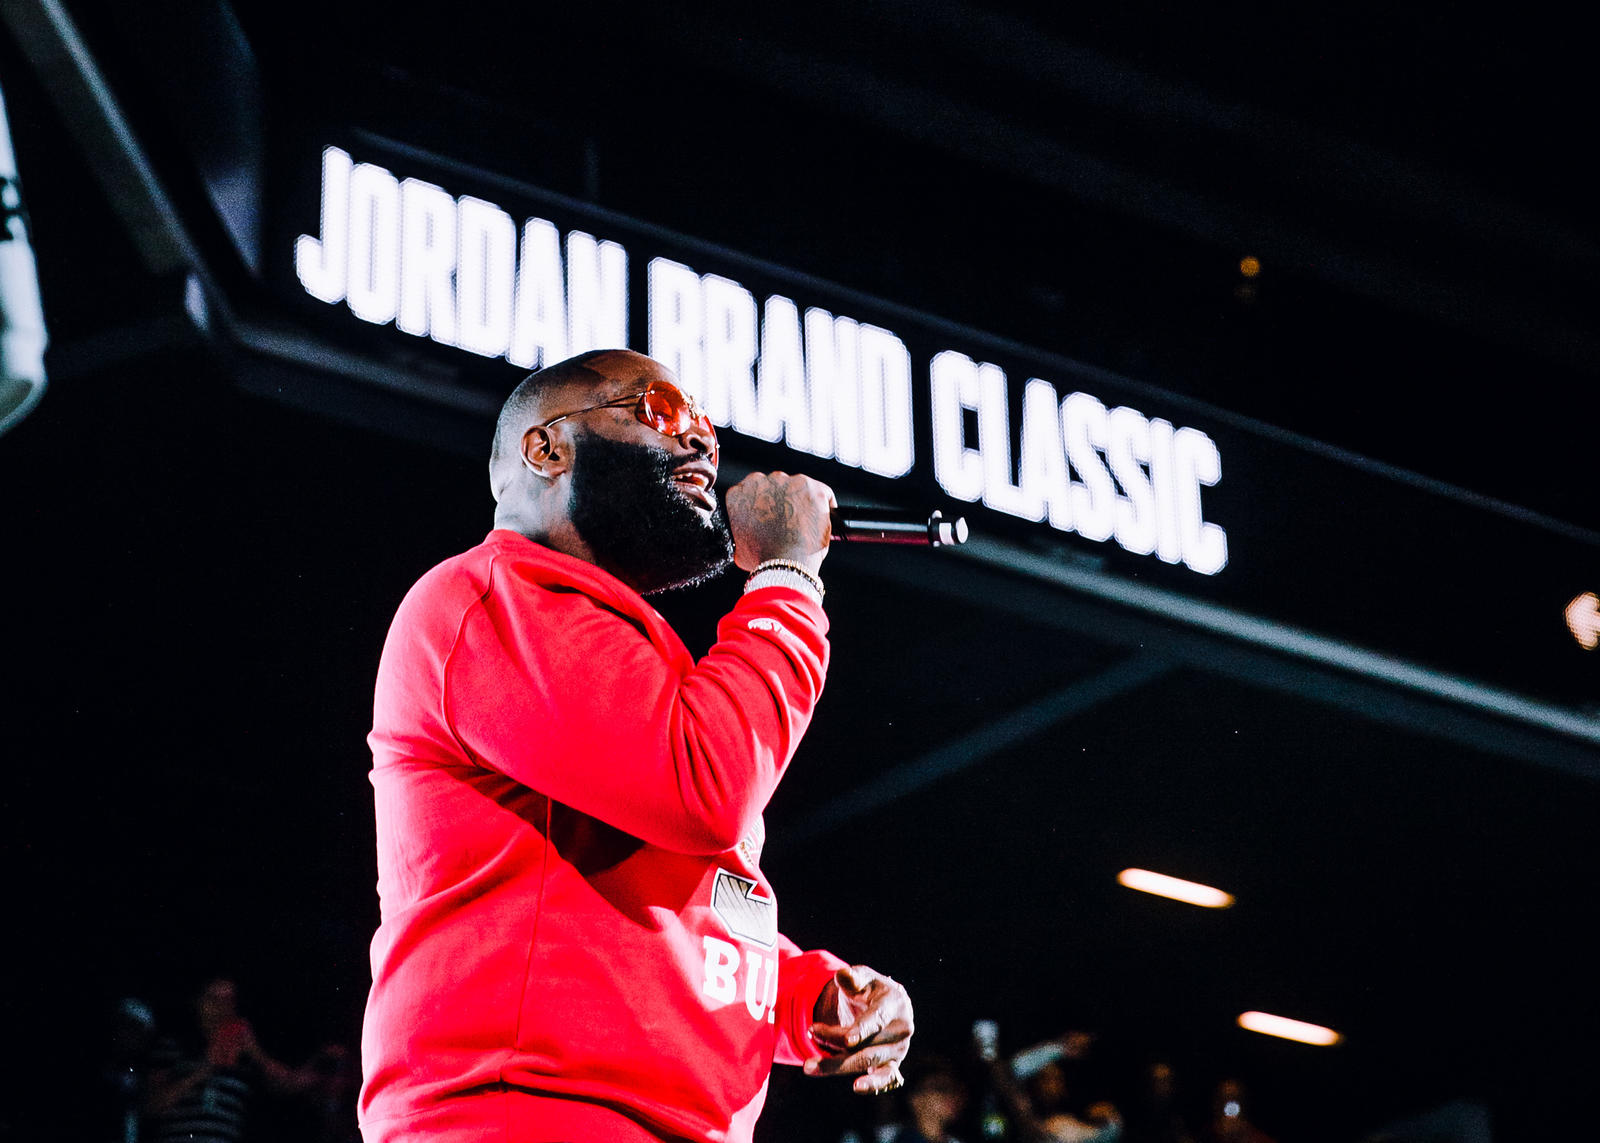 2017 JORDAN BRAND CLASSIC HOSTS NEXT GENERATION OF ELITE TALENT  5